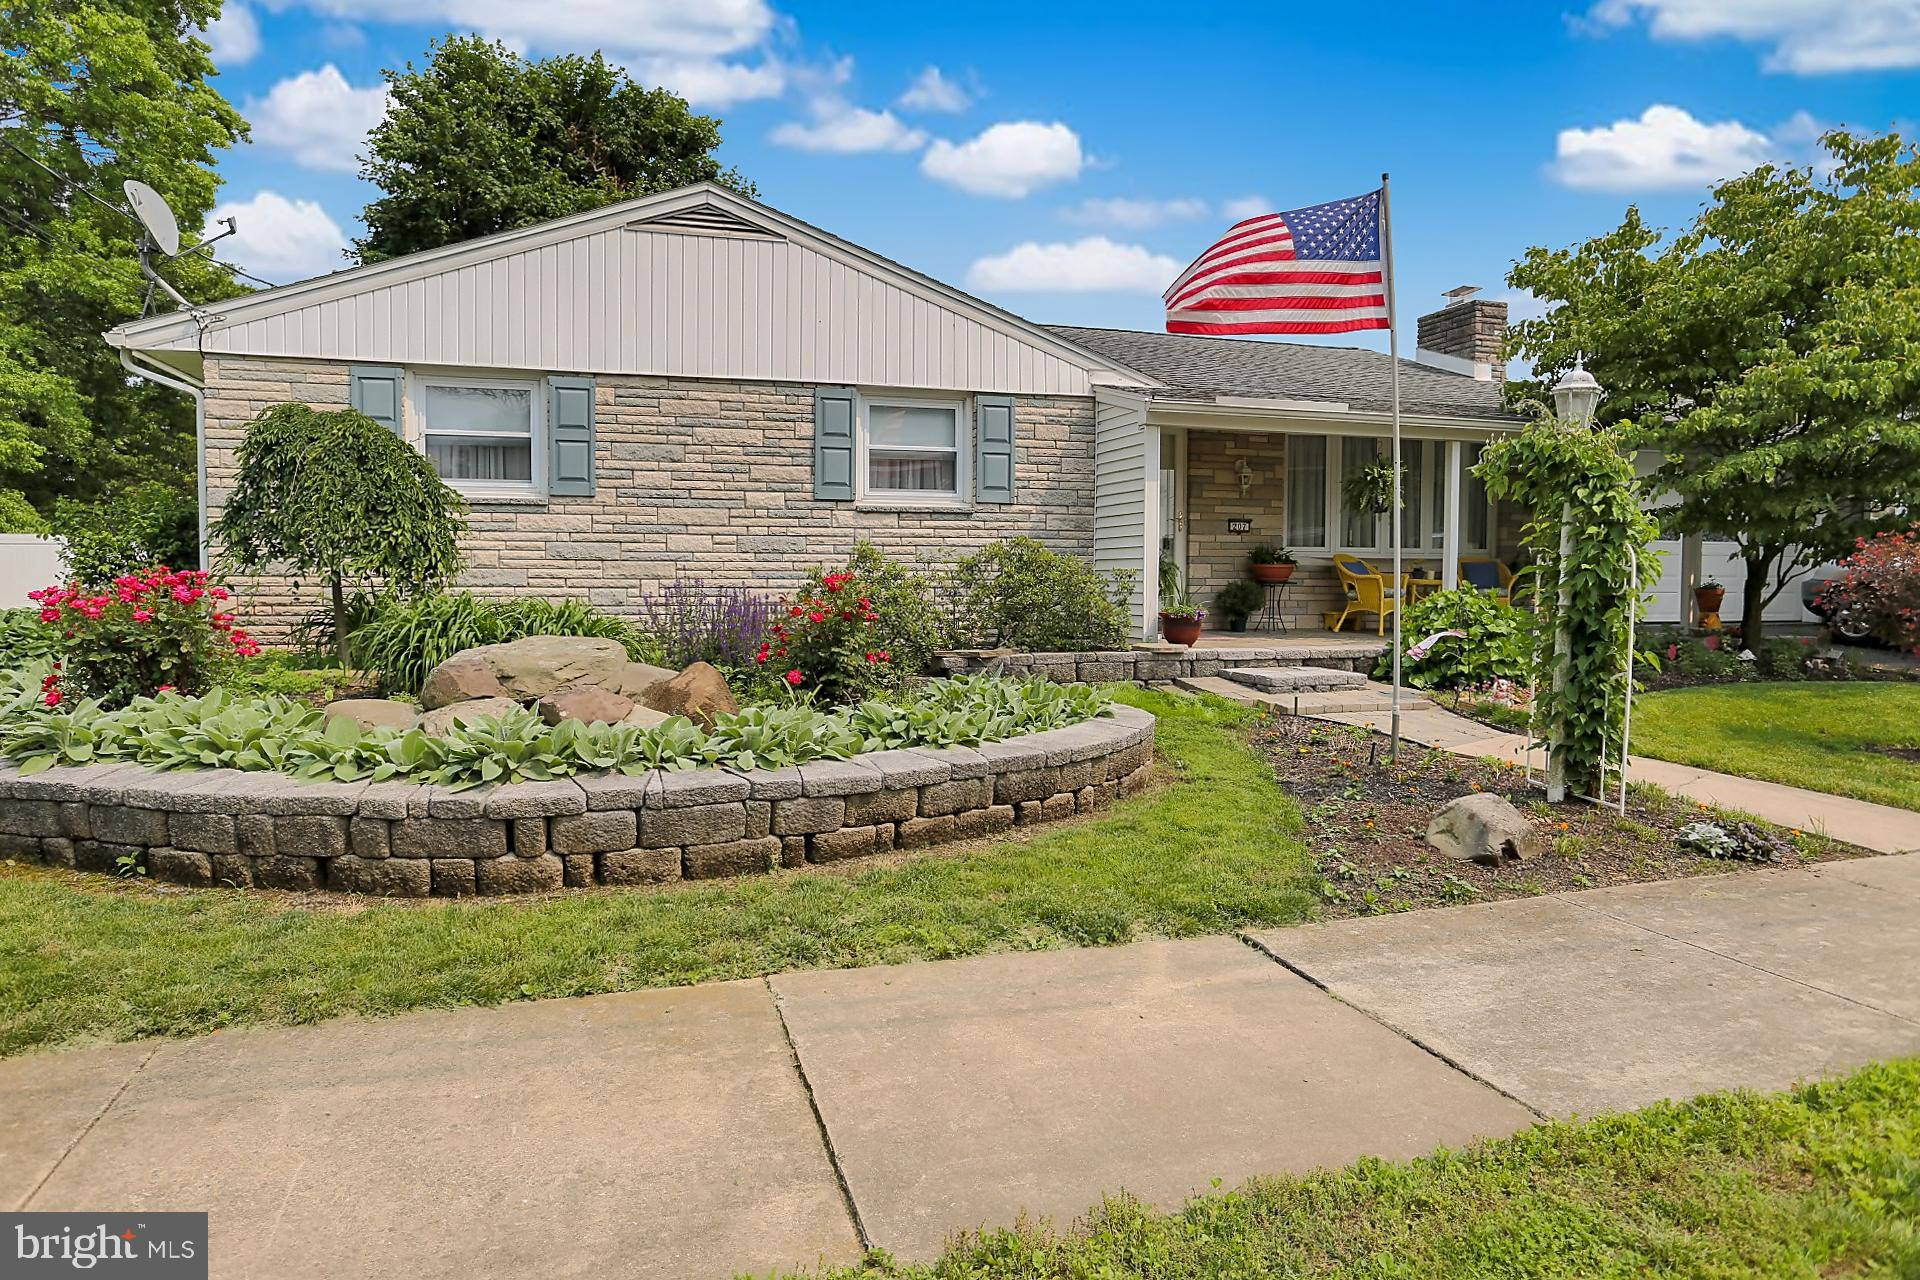 207 N ROBESON STREET, ROBESONIA, PA 19551